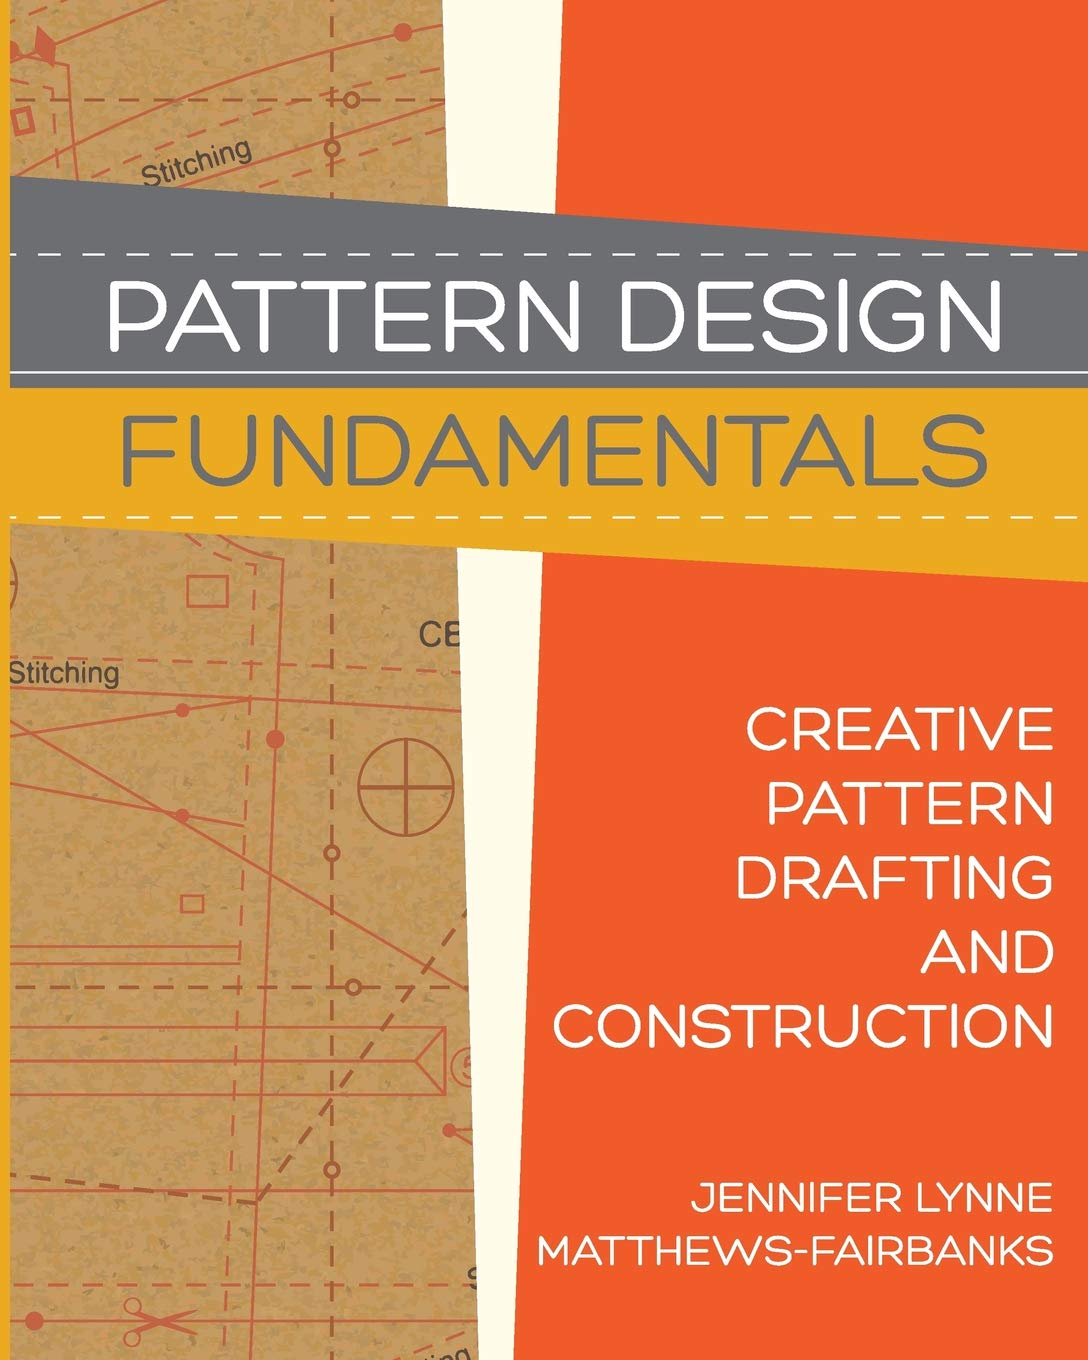 Pattern Design Fundamentals Construction And Pattern Making For Fashion Design Volume 1 Matthews Fairbanks Jennifer Lynne Forsyth Dawn Marie 9781725927728 Amazon Com Books